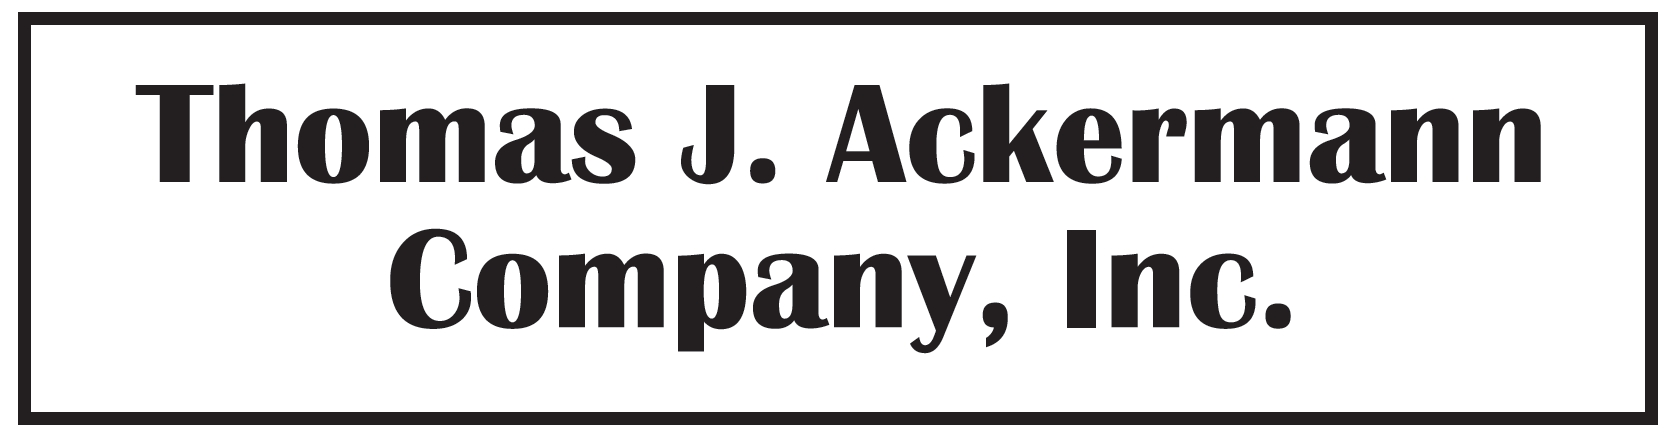 Thomas J. Ackermann Co., Inc. logo